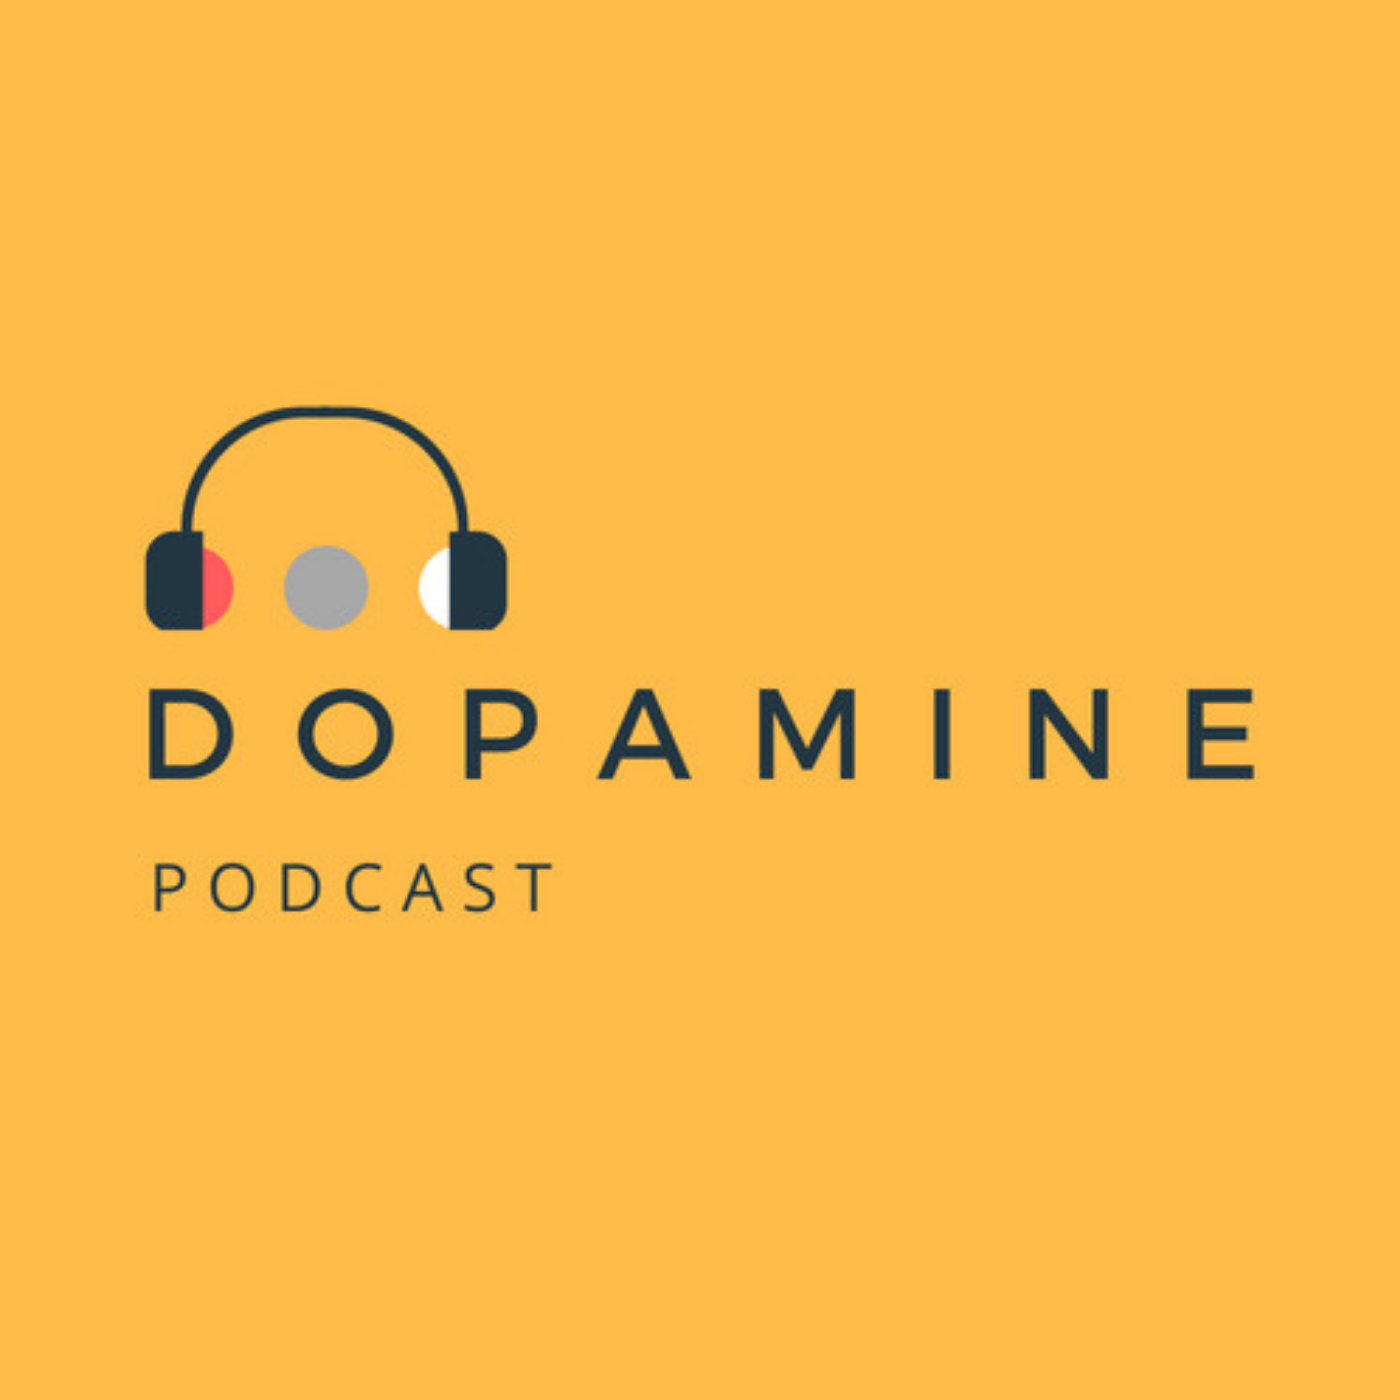 Dopamine Podcast